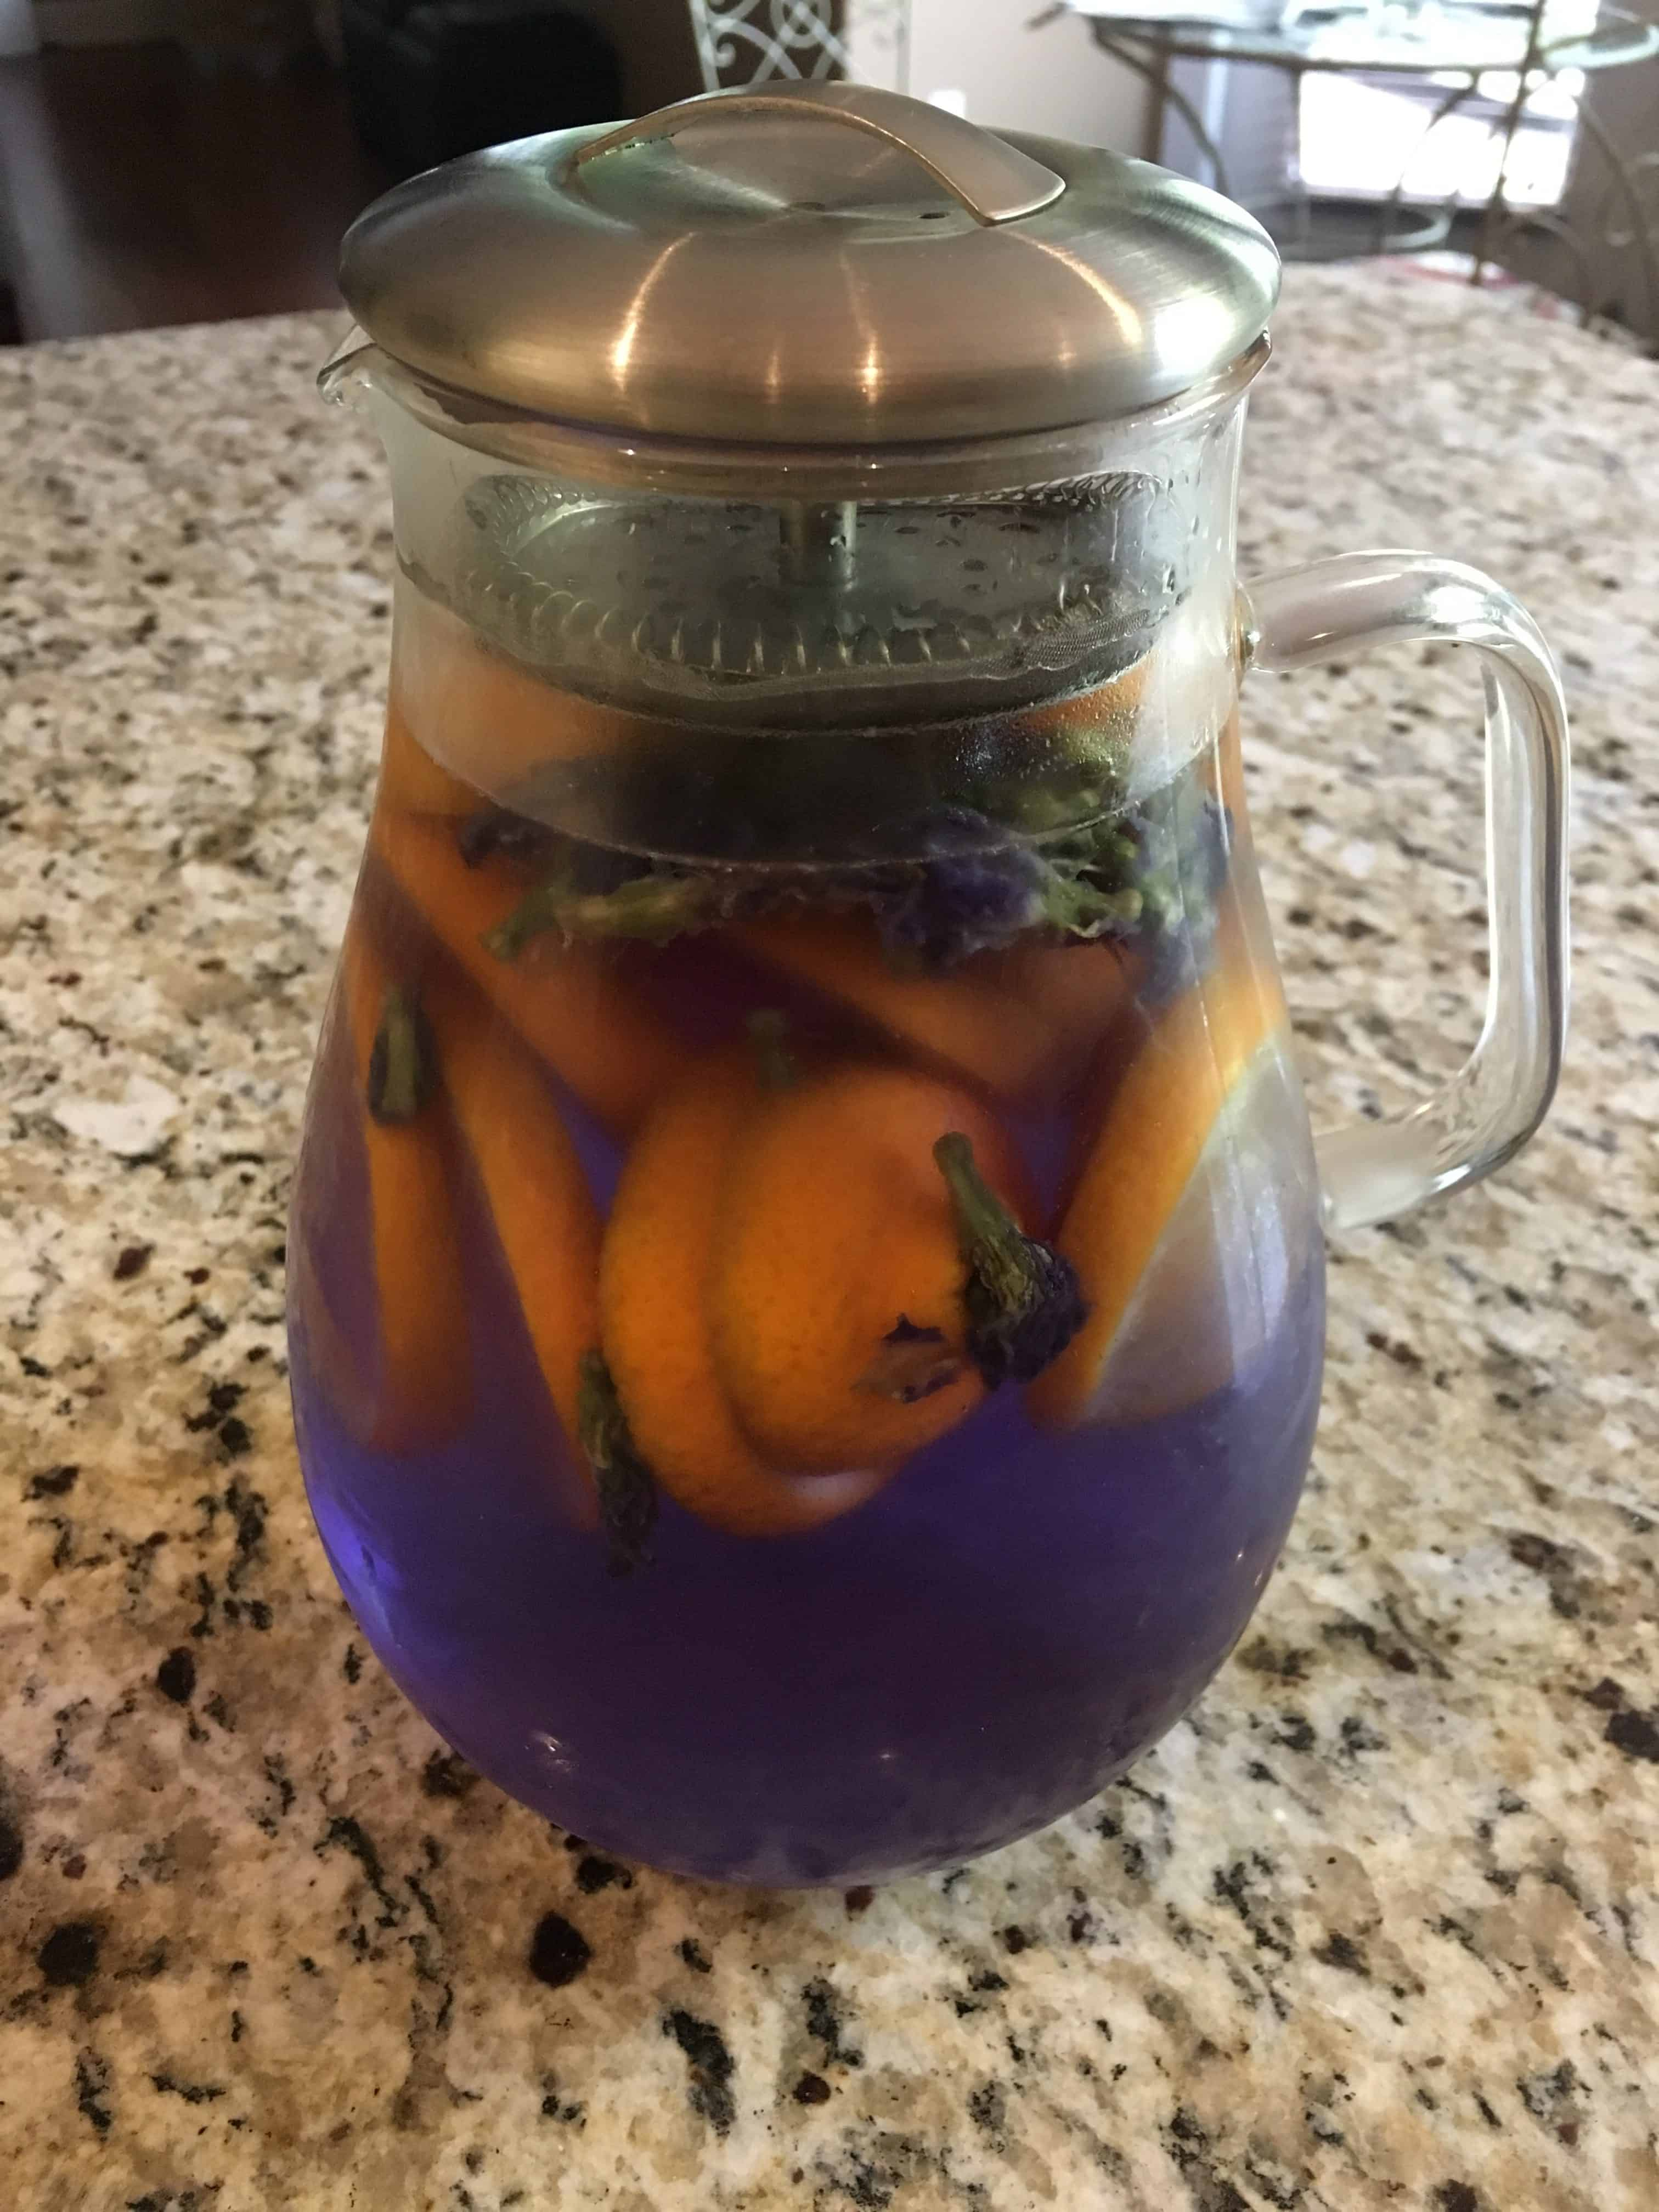 Photo of an Infusion Pitcher with Metal Screen to keep contents from pouring out. Pitcher contains Butterfly Pea Flowers and Lemons. https://trimazing.com/